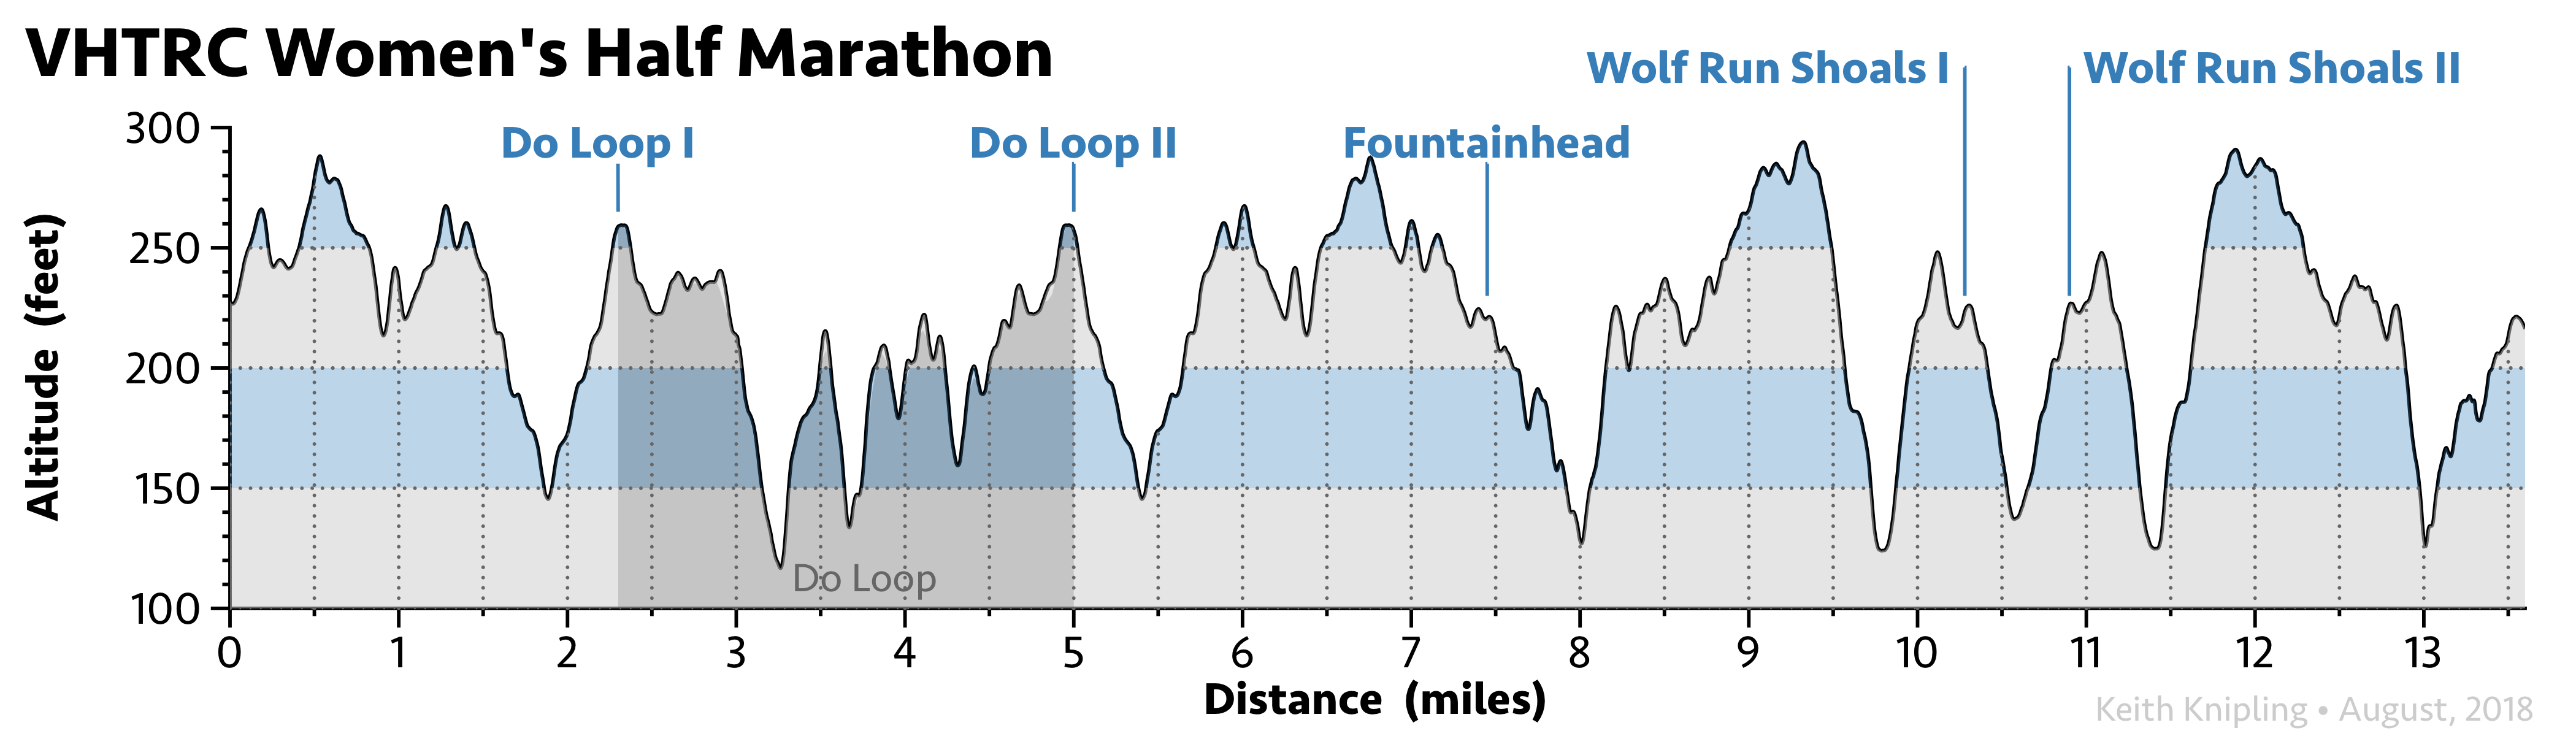 Elevation profile of the Women's Half Marathon